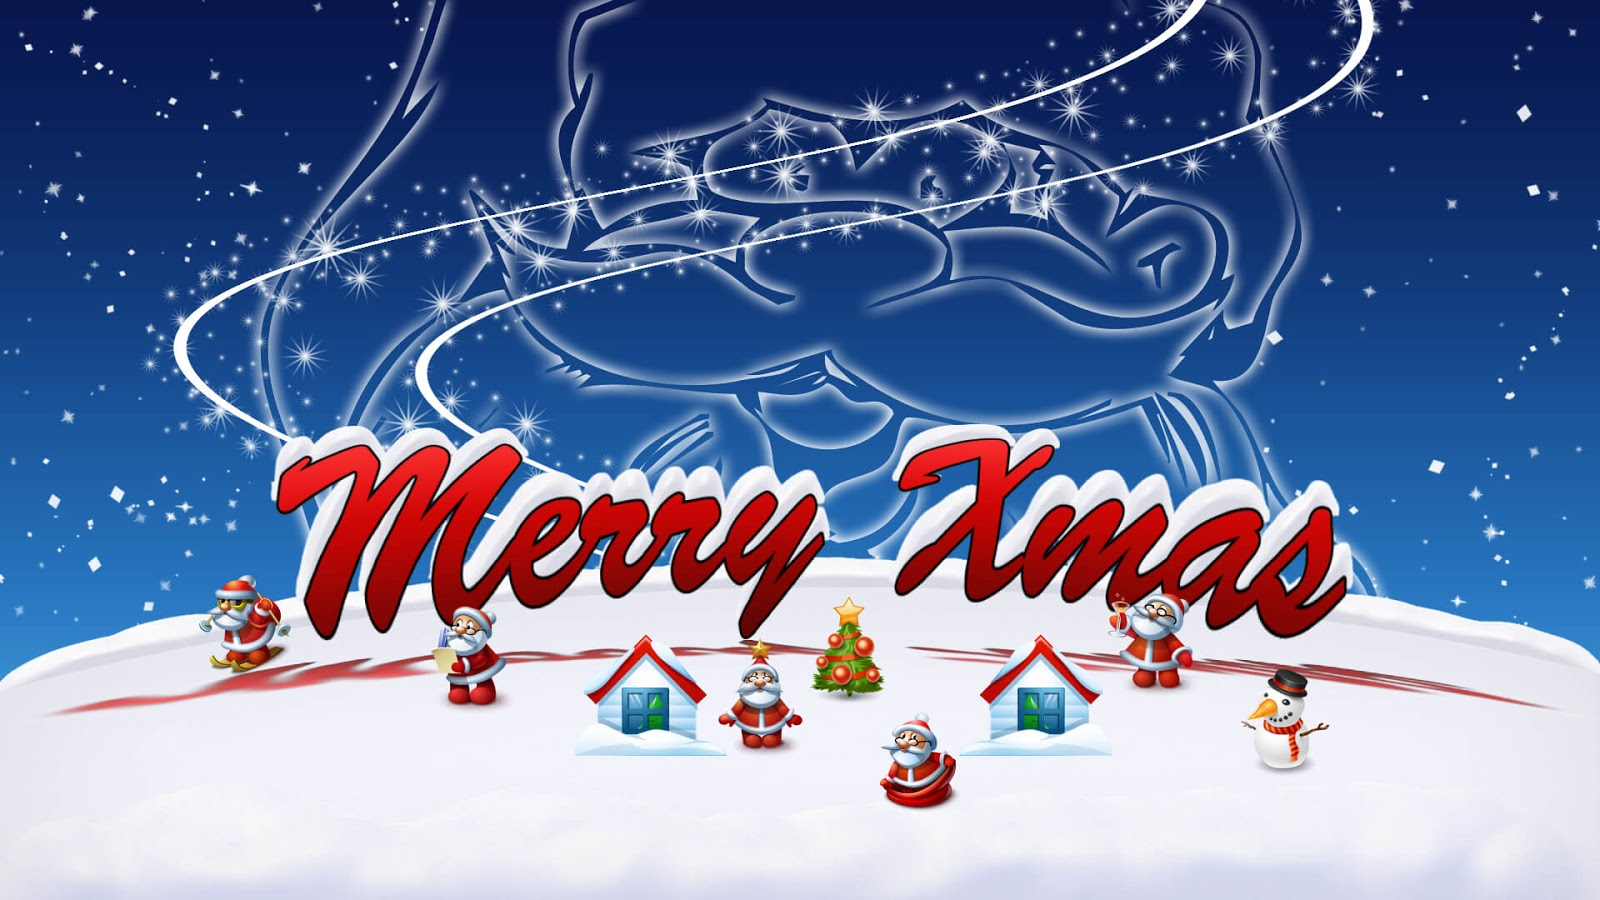 Xmas and Happy New Year Quotes